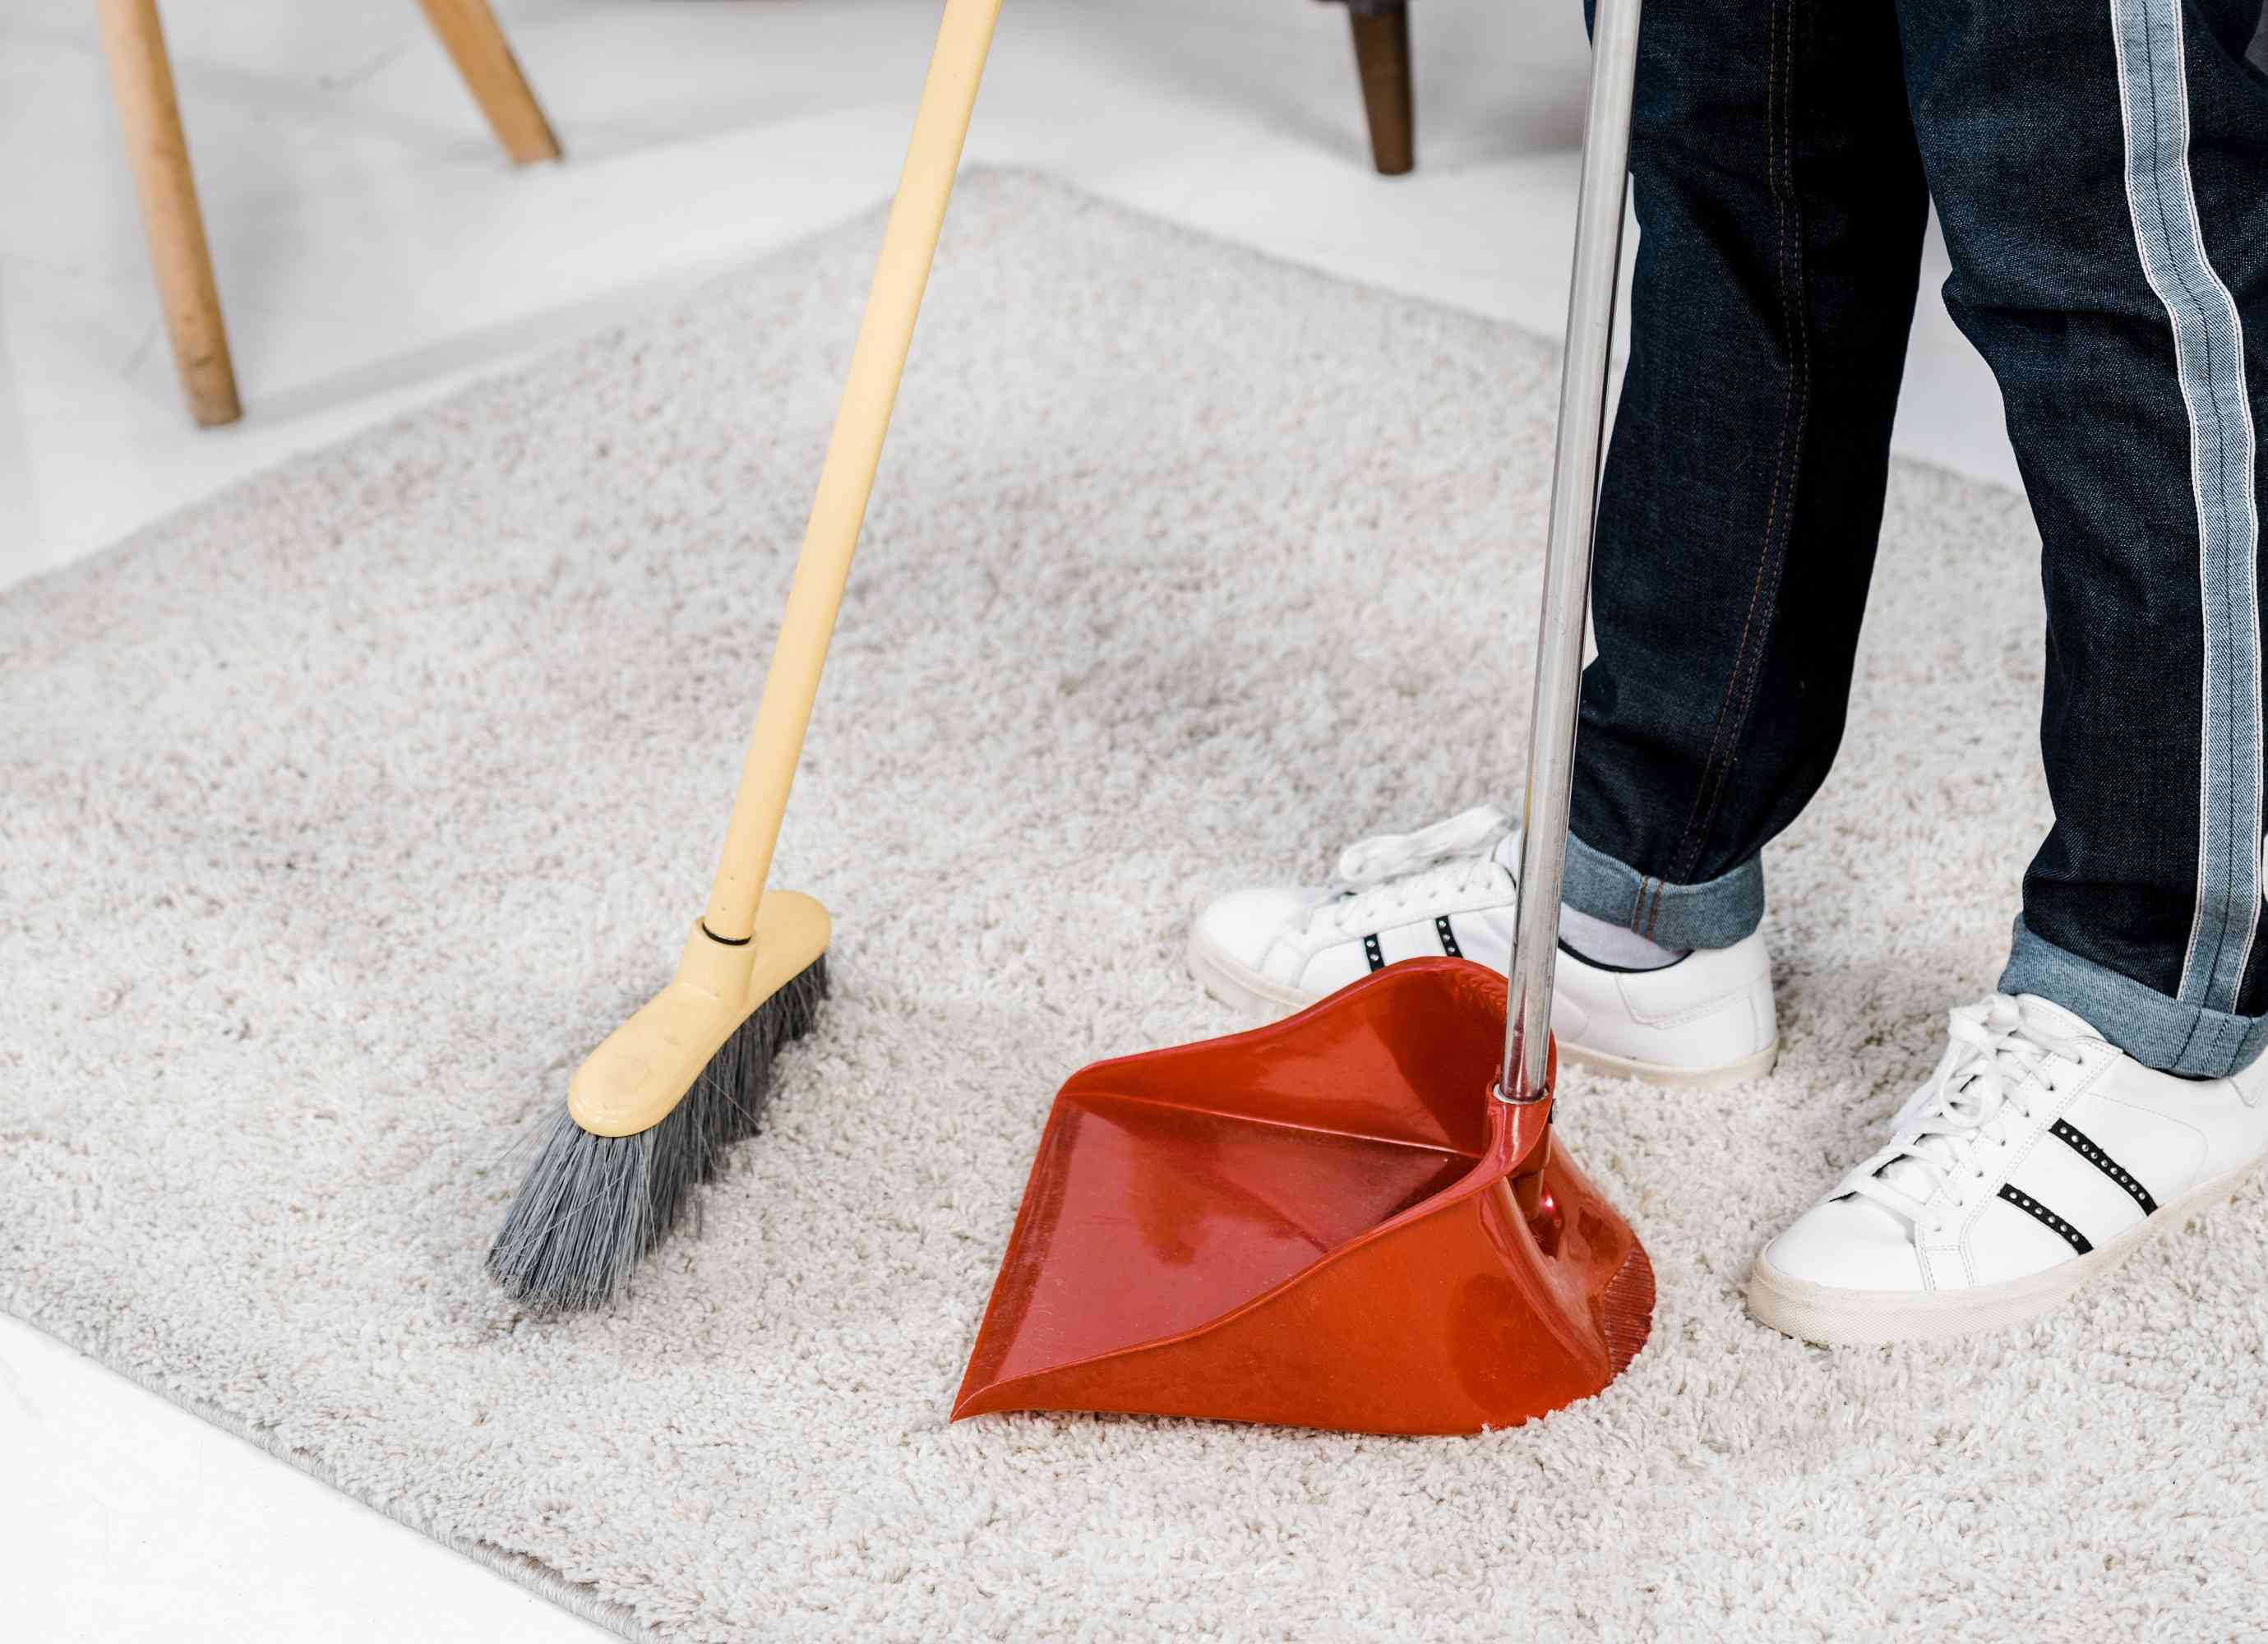 Person sweeping carpet with broom and dustpan